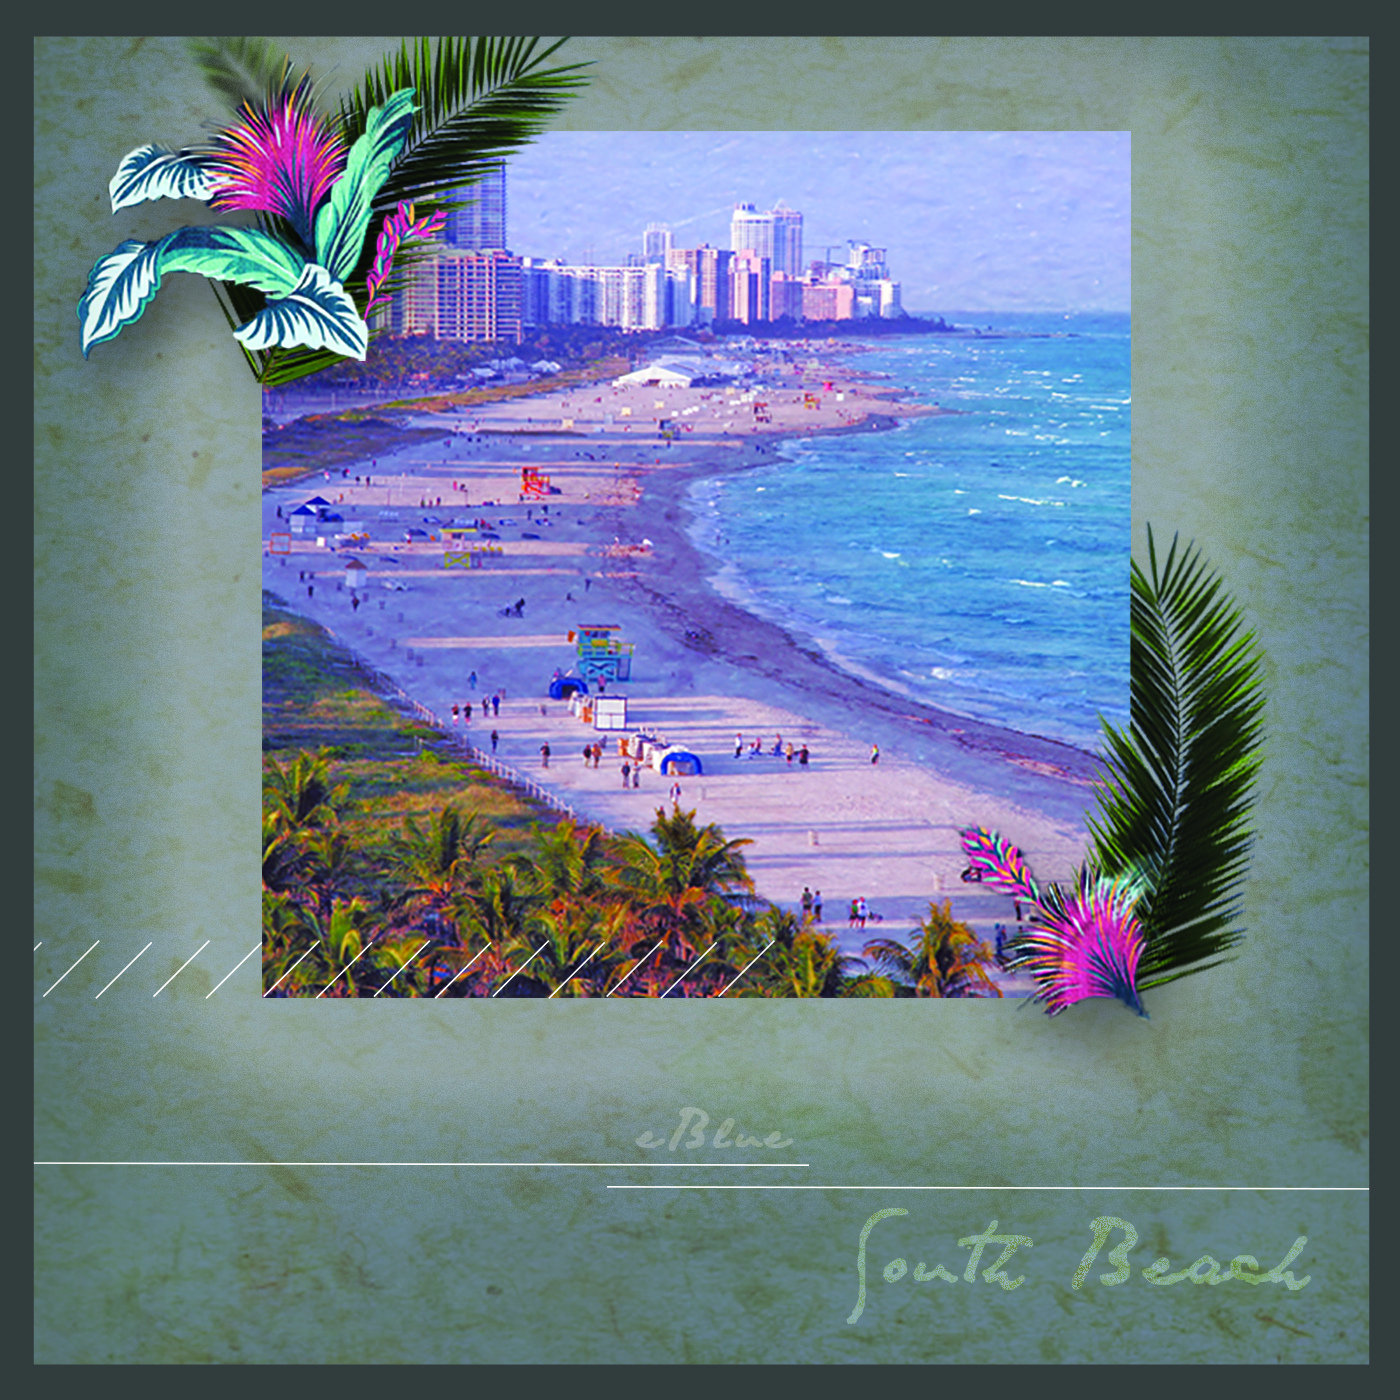 eblue south beach 2.jpg